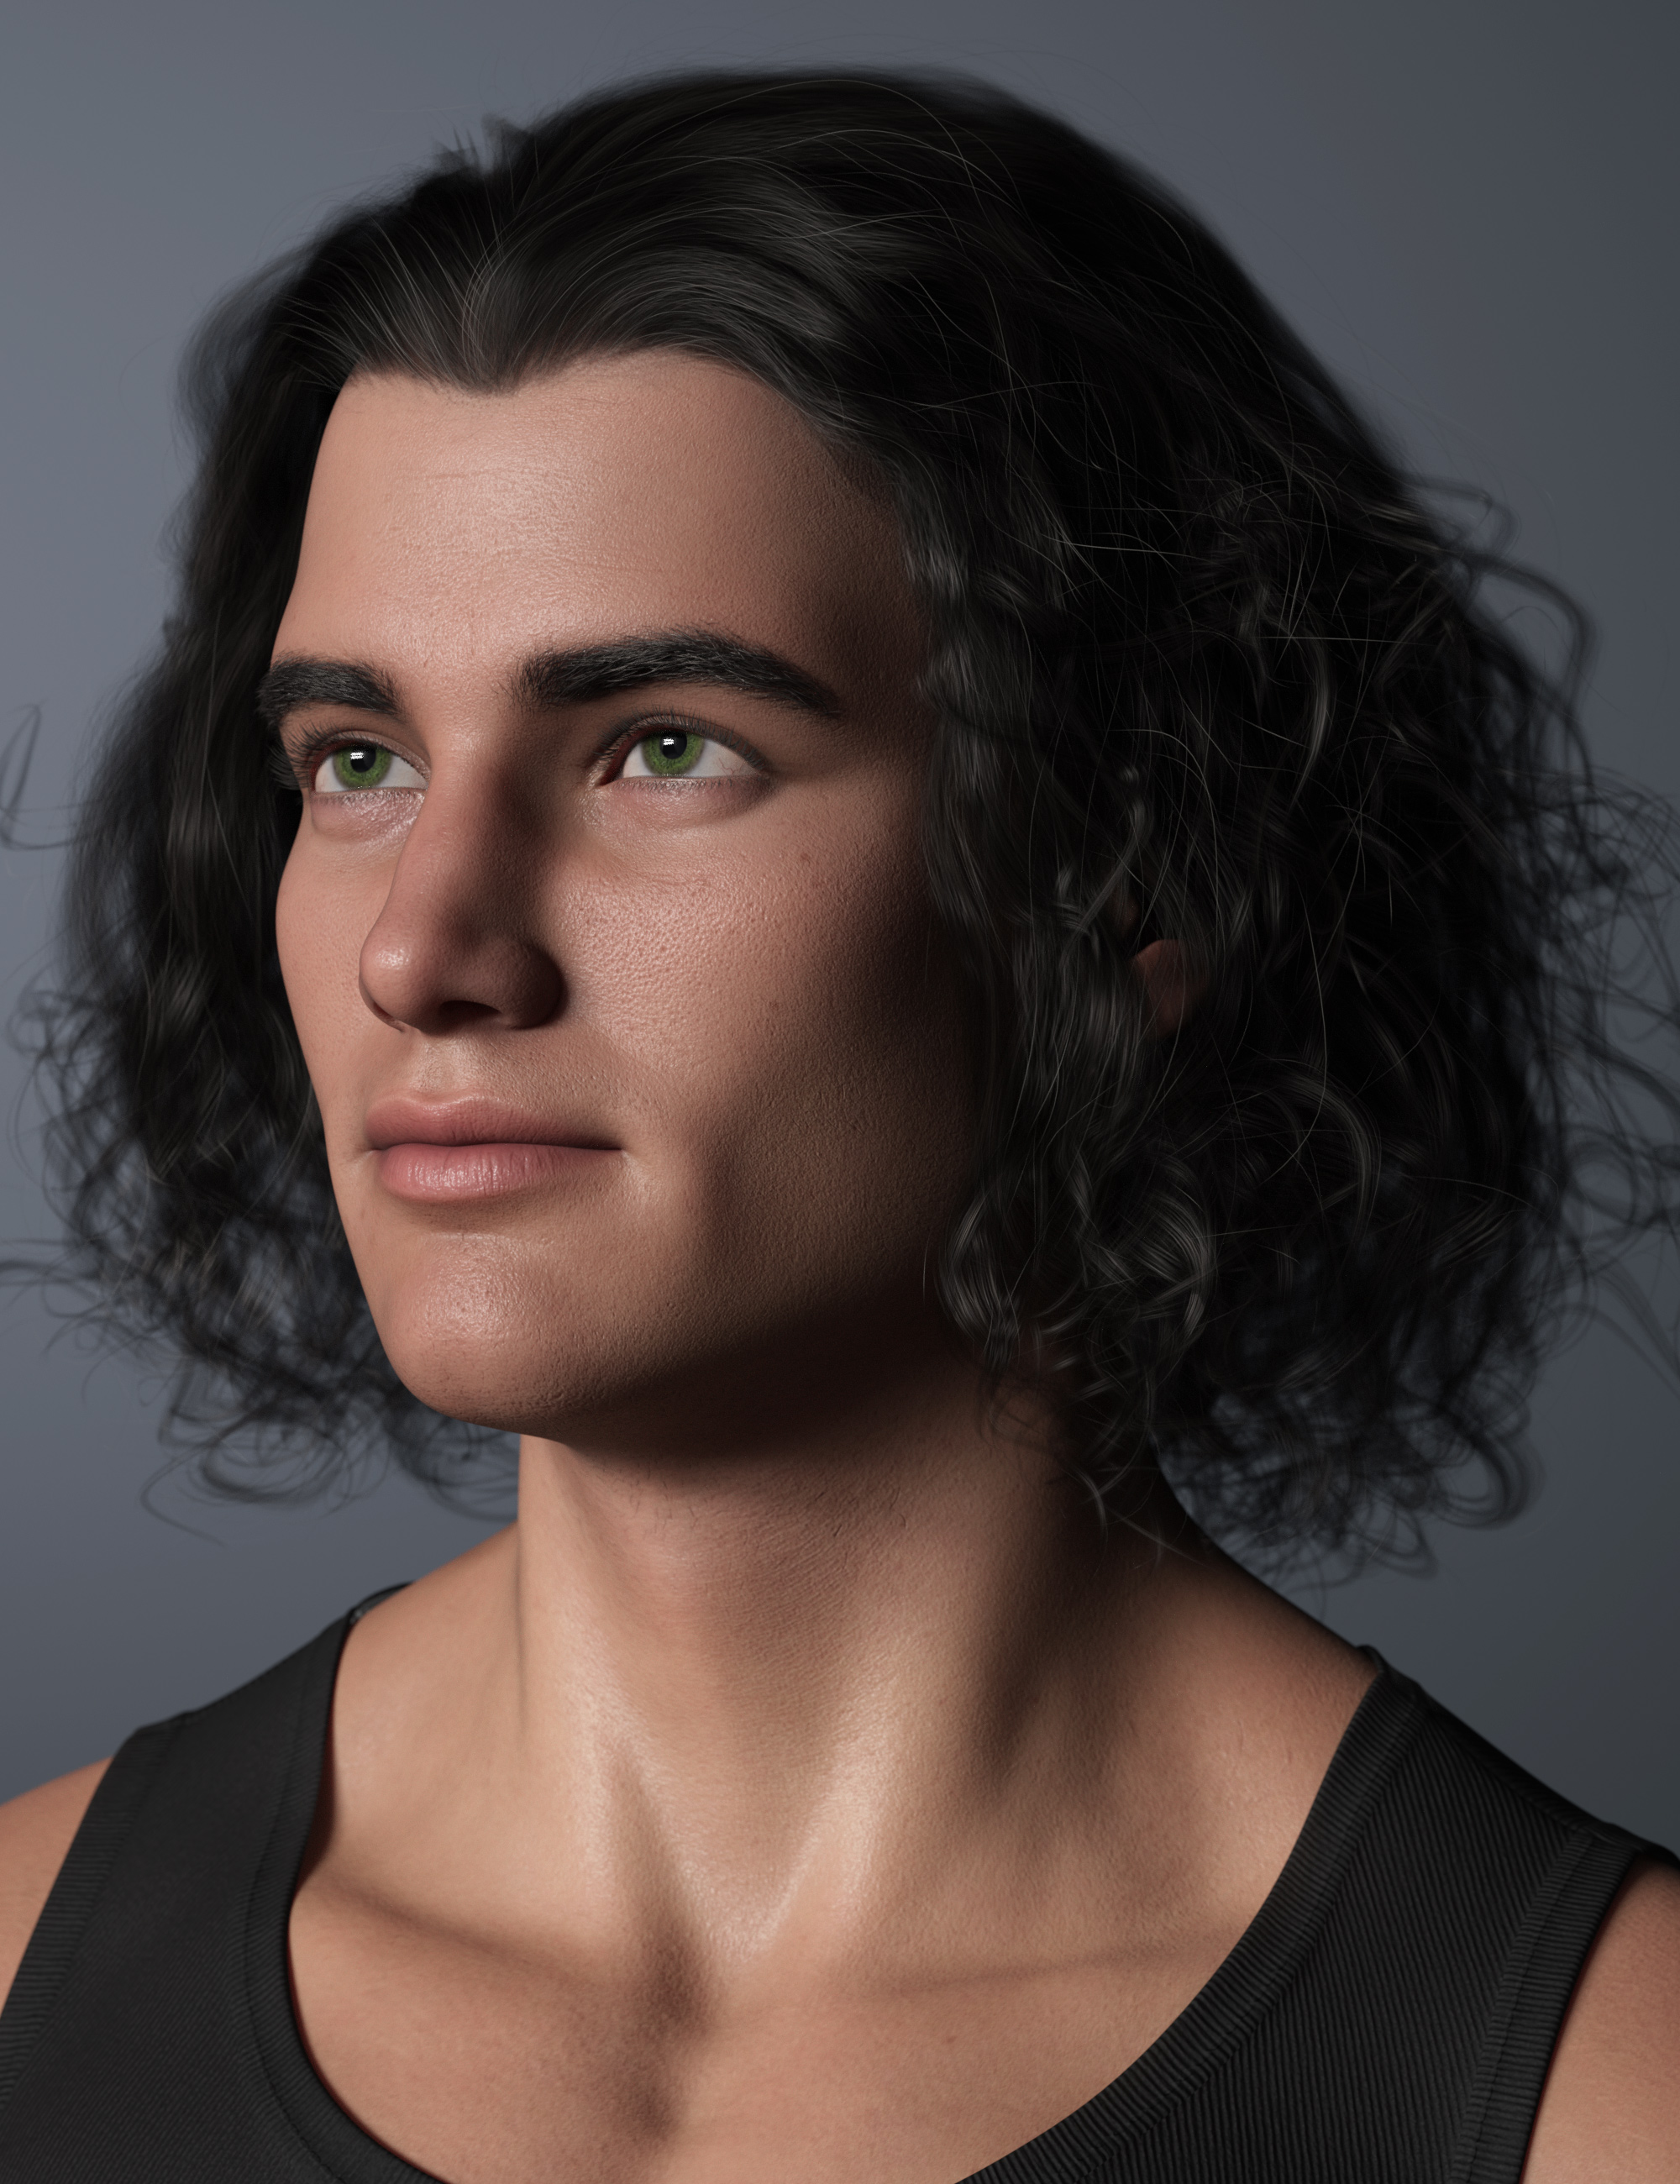 Curly Swept Style Hair for Genesis 8 and Genesis 8.1 Males by: outoftouch, 3D Models by Daz 3D